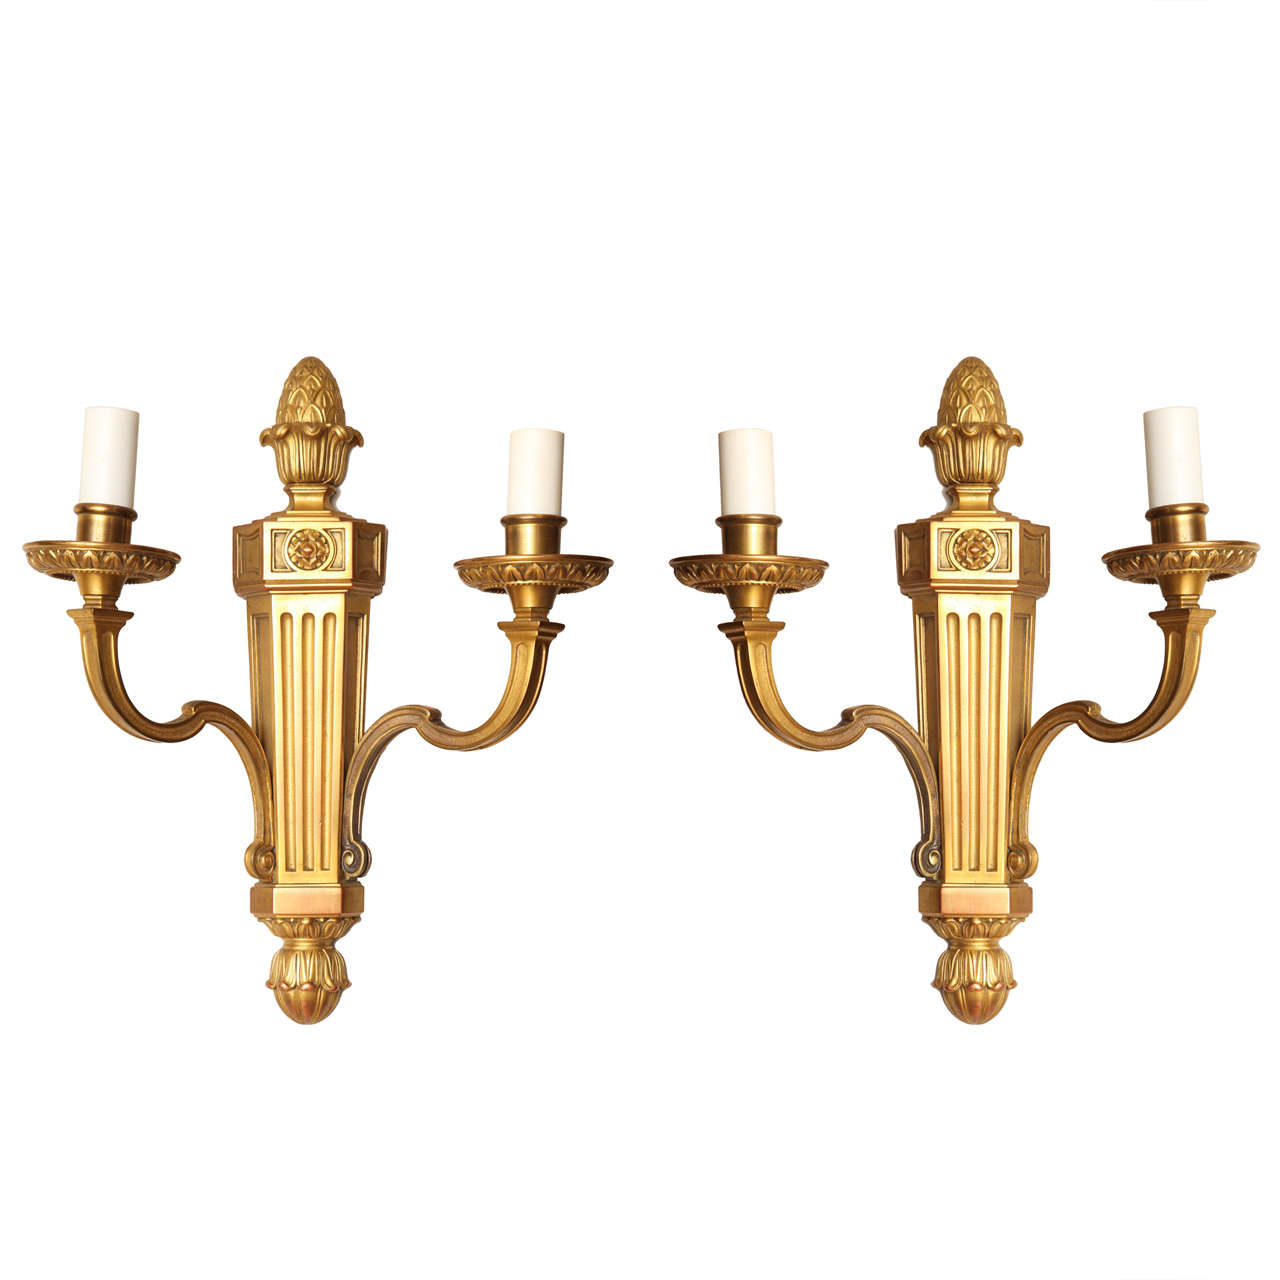 Pair of Louis XVI Two-Light Wall Sconces Attributed to Caldwell